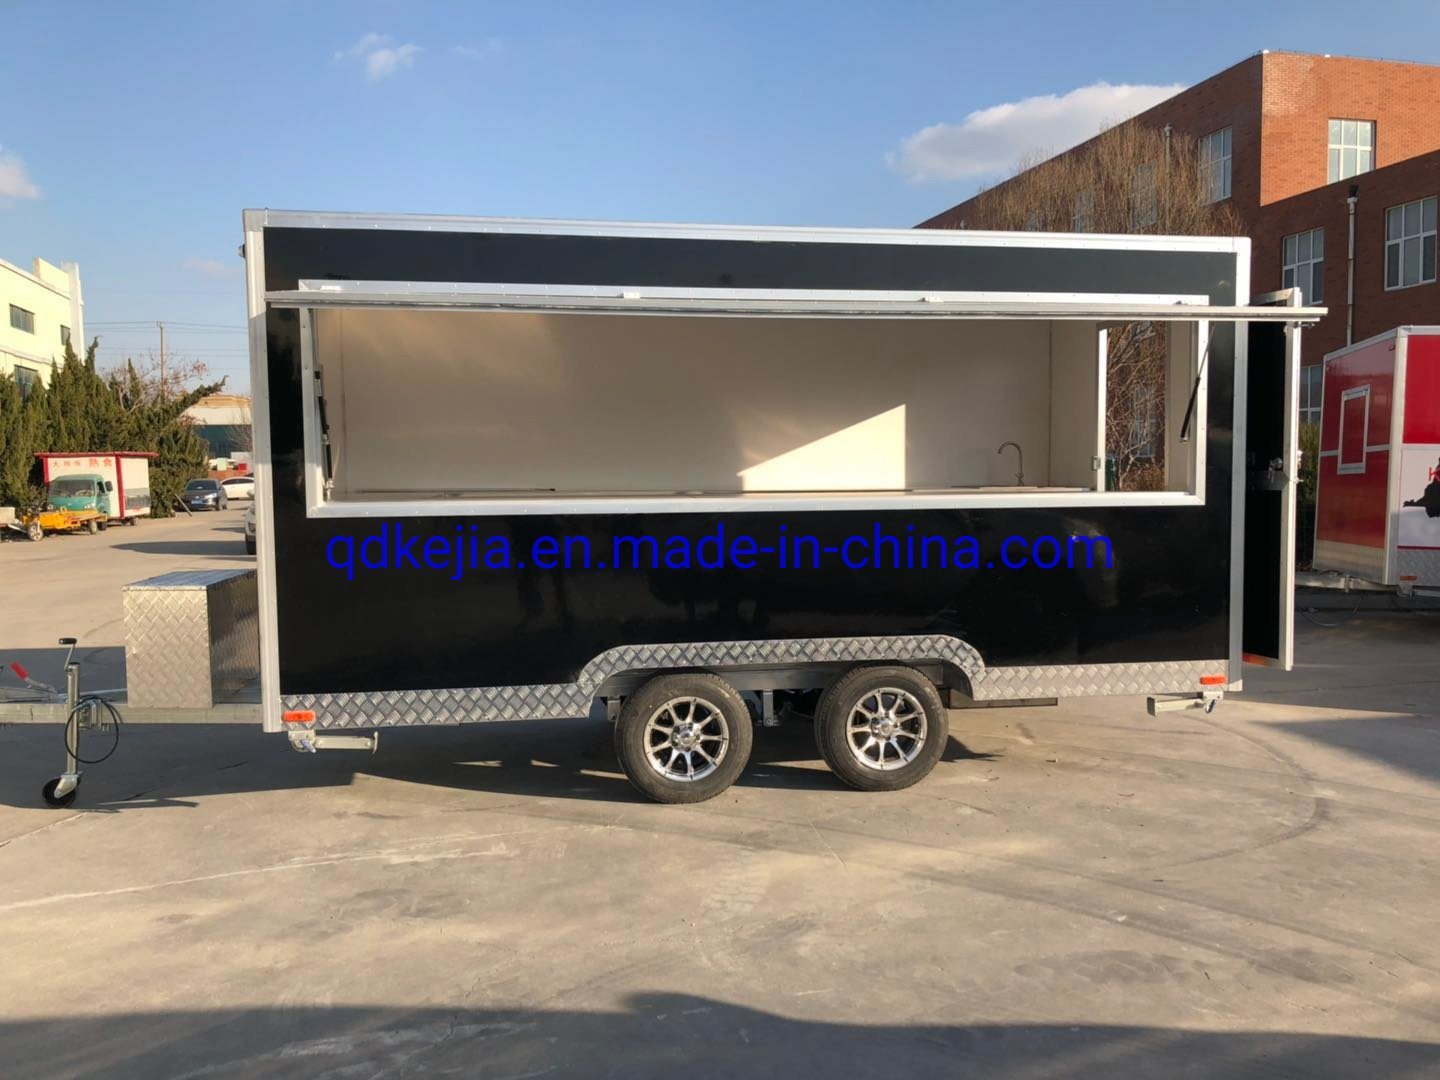 China 2020 Hot Sale Ice Cream Vending Cart Mobile Kitchen Food Truck Fast Food Trailer For Sale China Food Trailer Food Truck